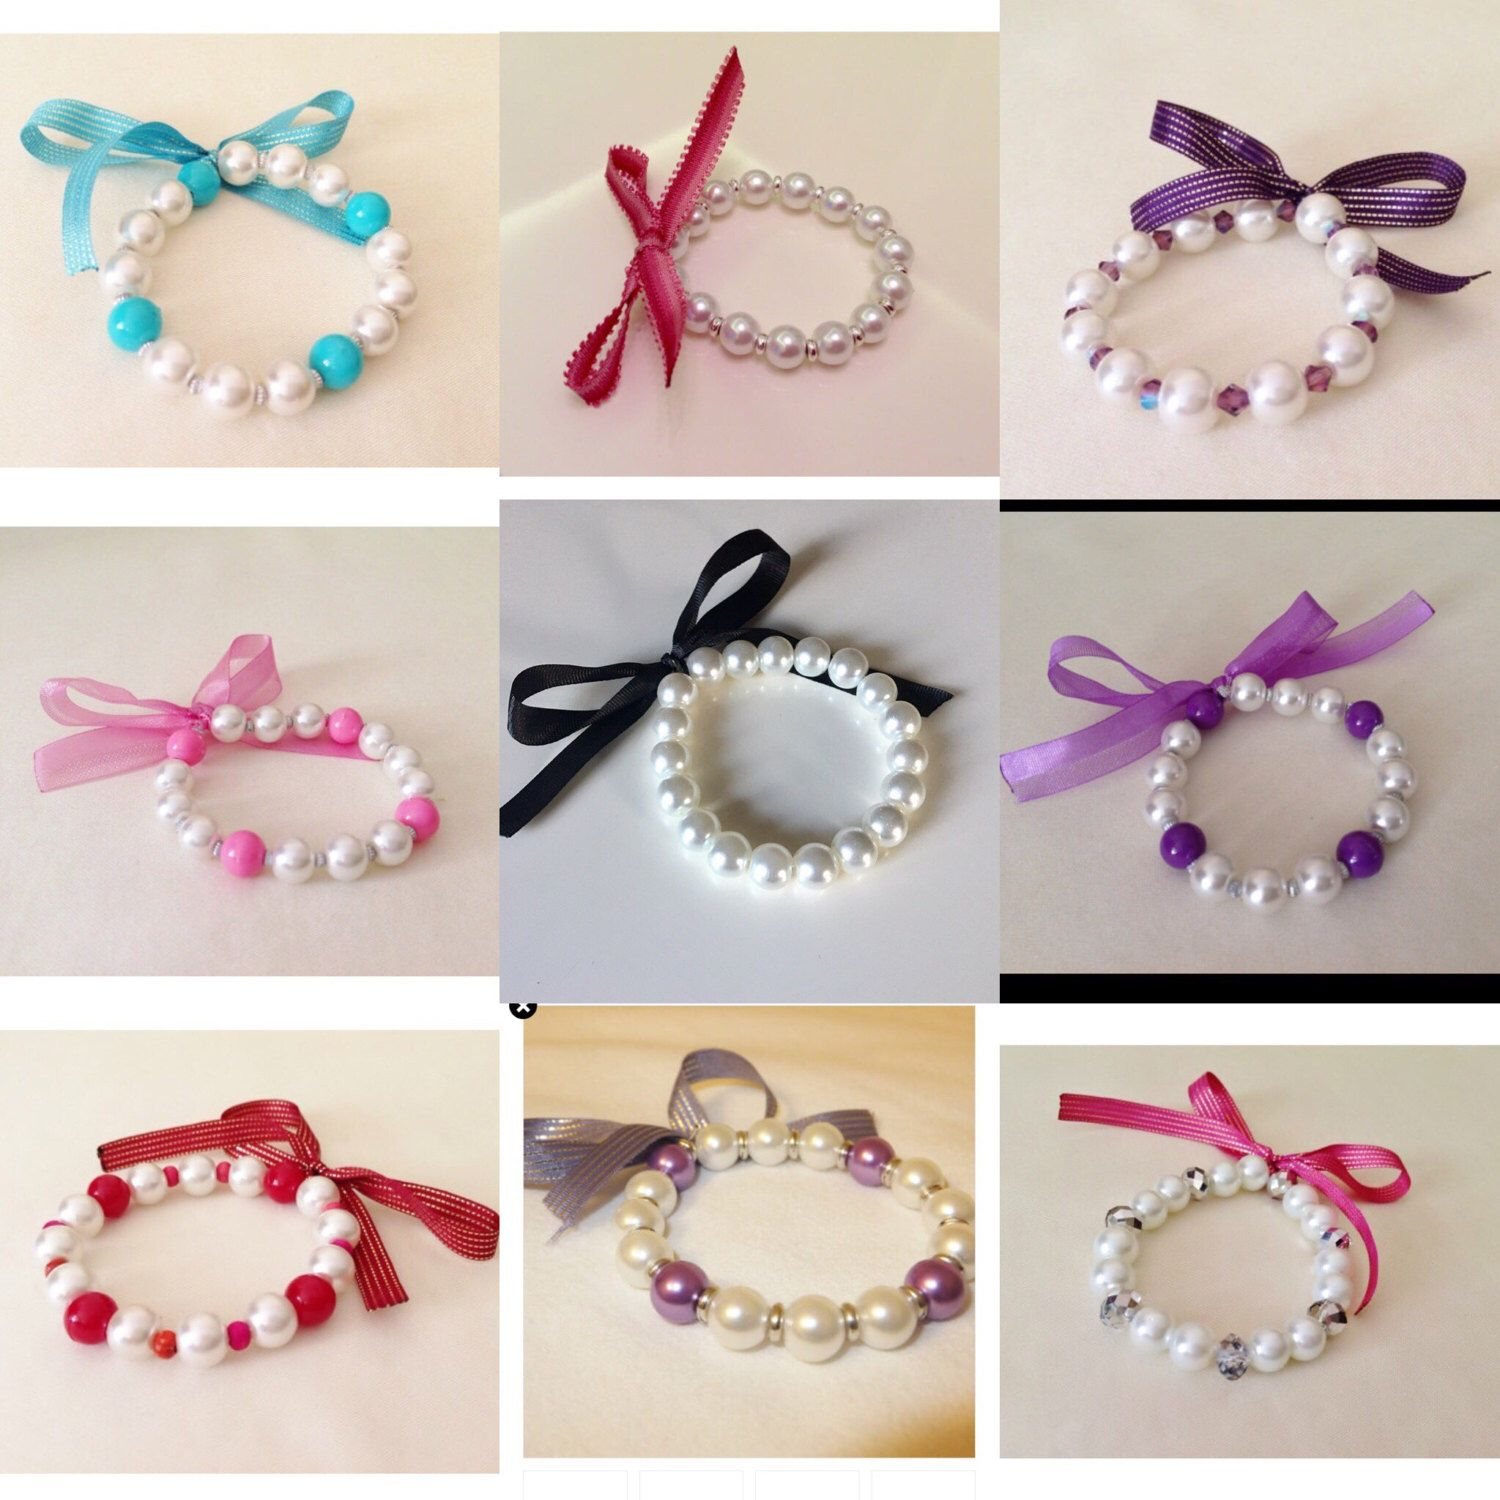 Pin by nalansjewellery on jewelrytakı pinterest kids bracelets